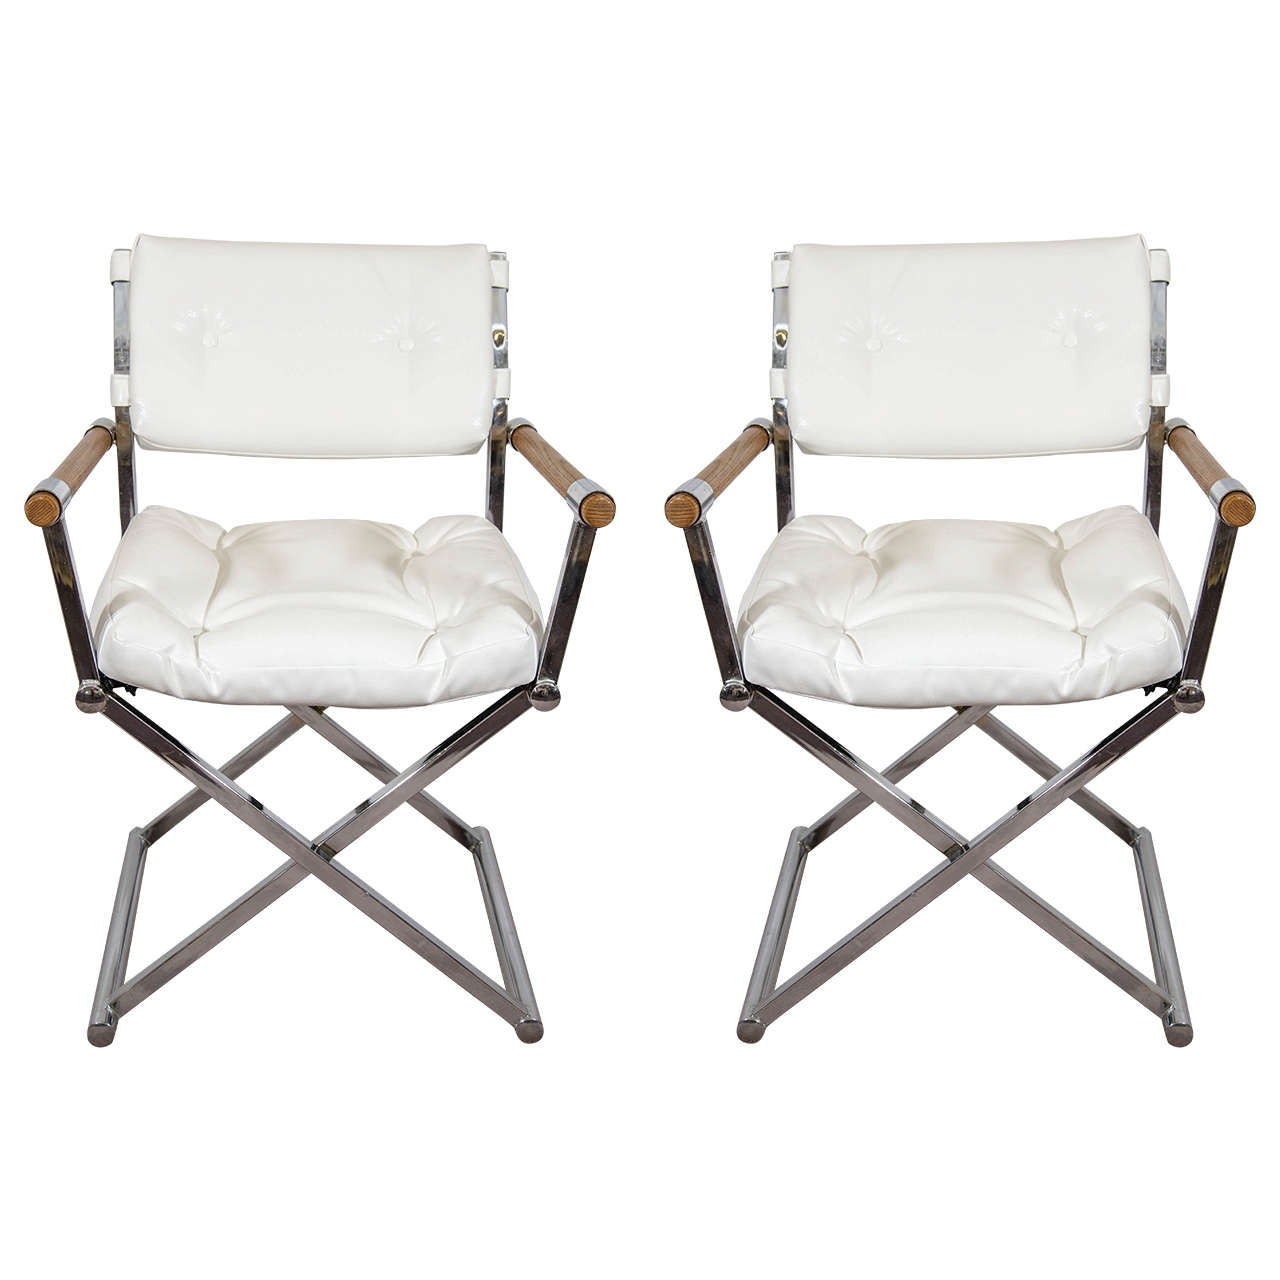 Captivating A Midcentury Pair Of White Leather Directoru0027s Chairs Attributed To Milo  Baughman For Sale